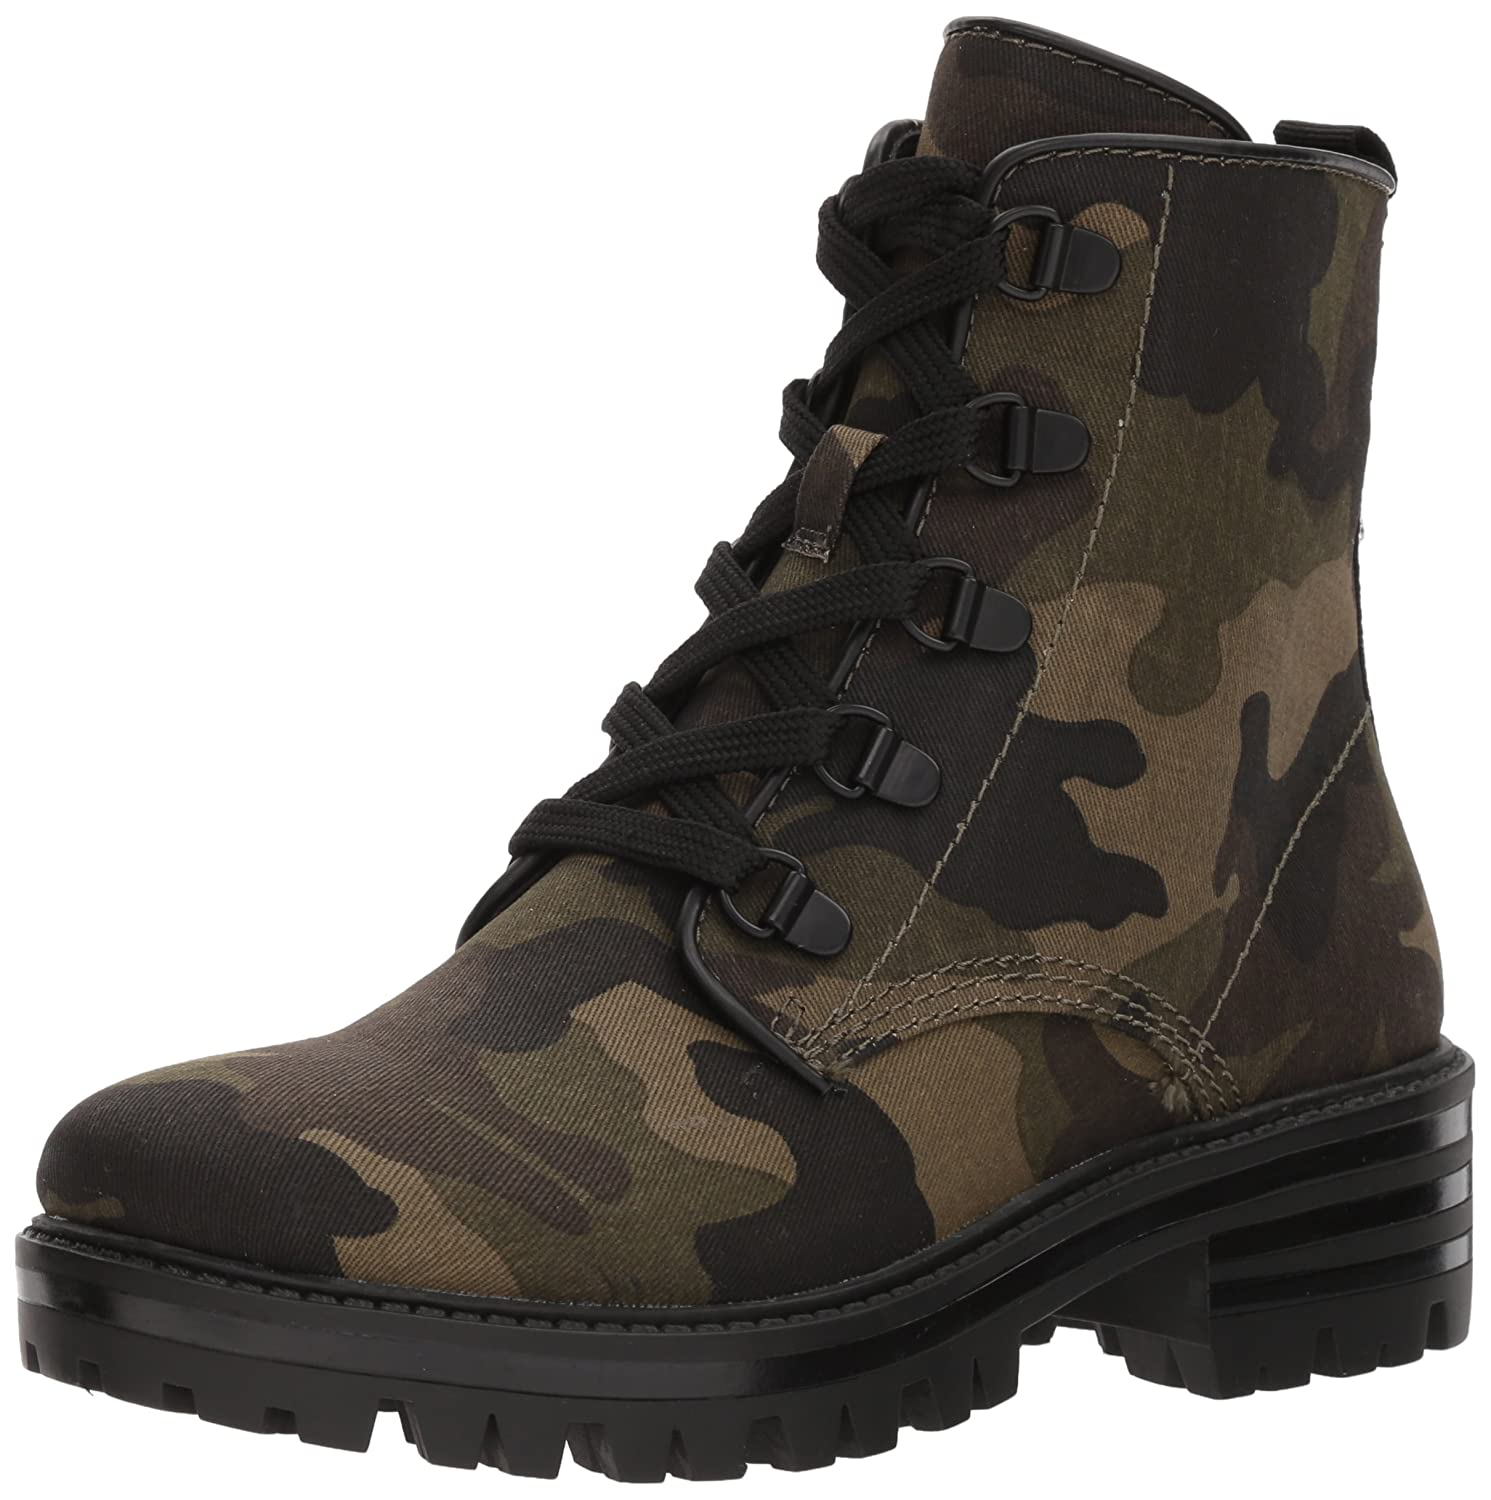 KENDALL + KYLIE Women's Epic Ankle Boot B078NHR8DR 8 B(M) US|Green Camo